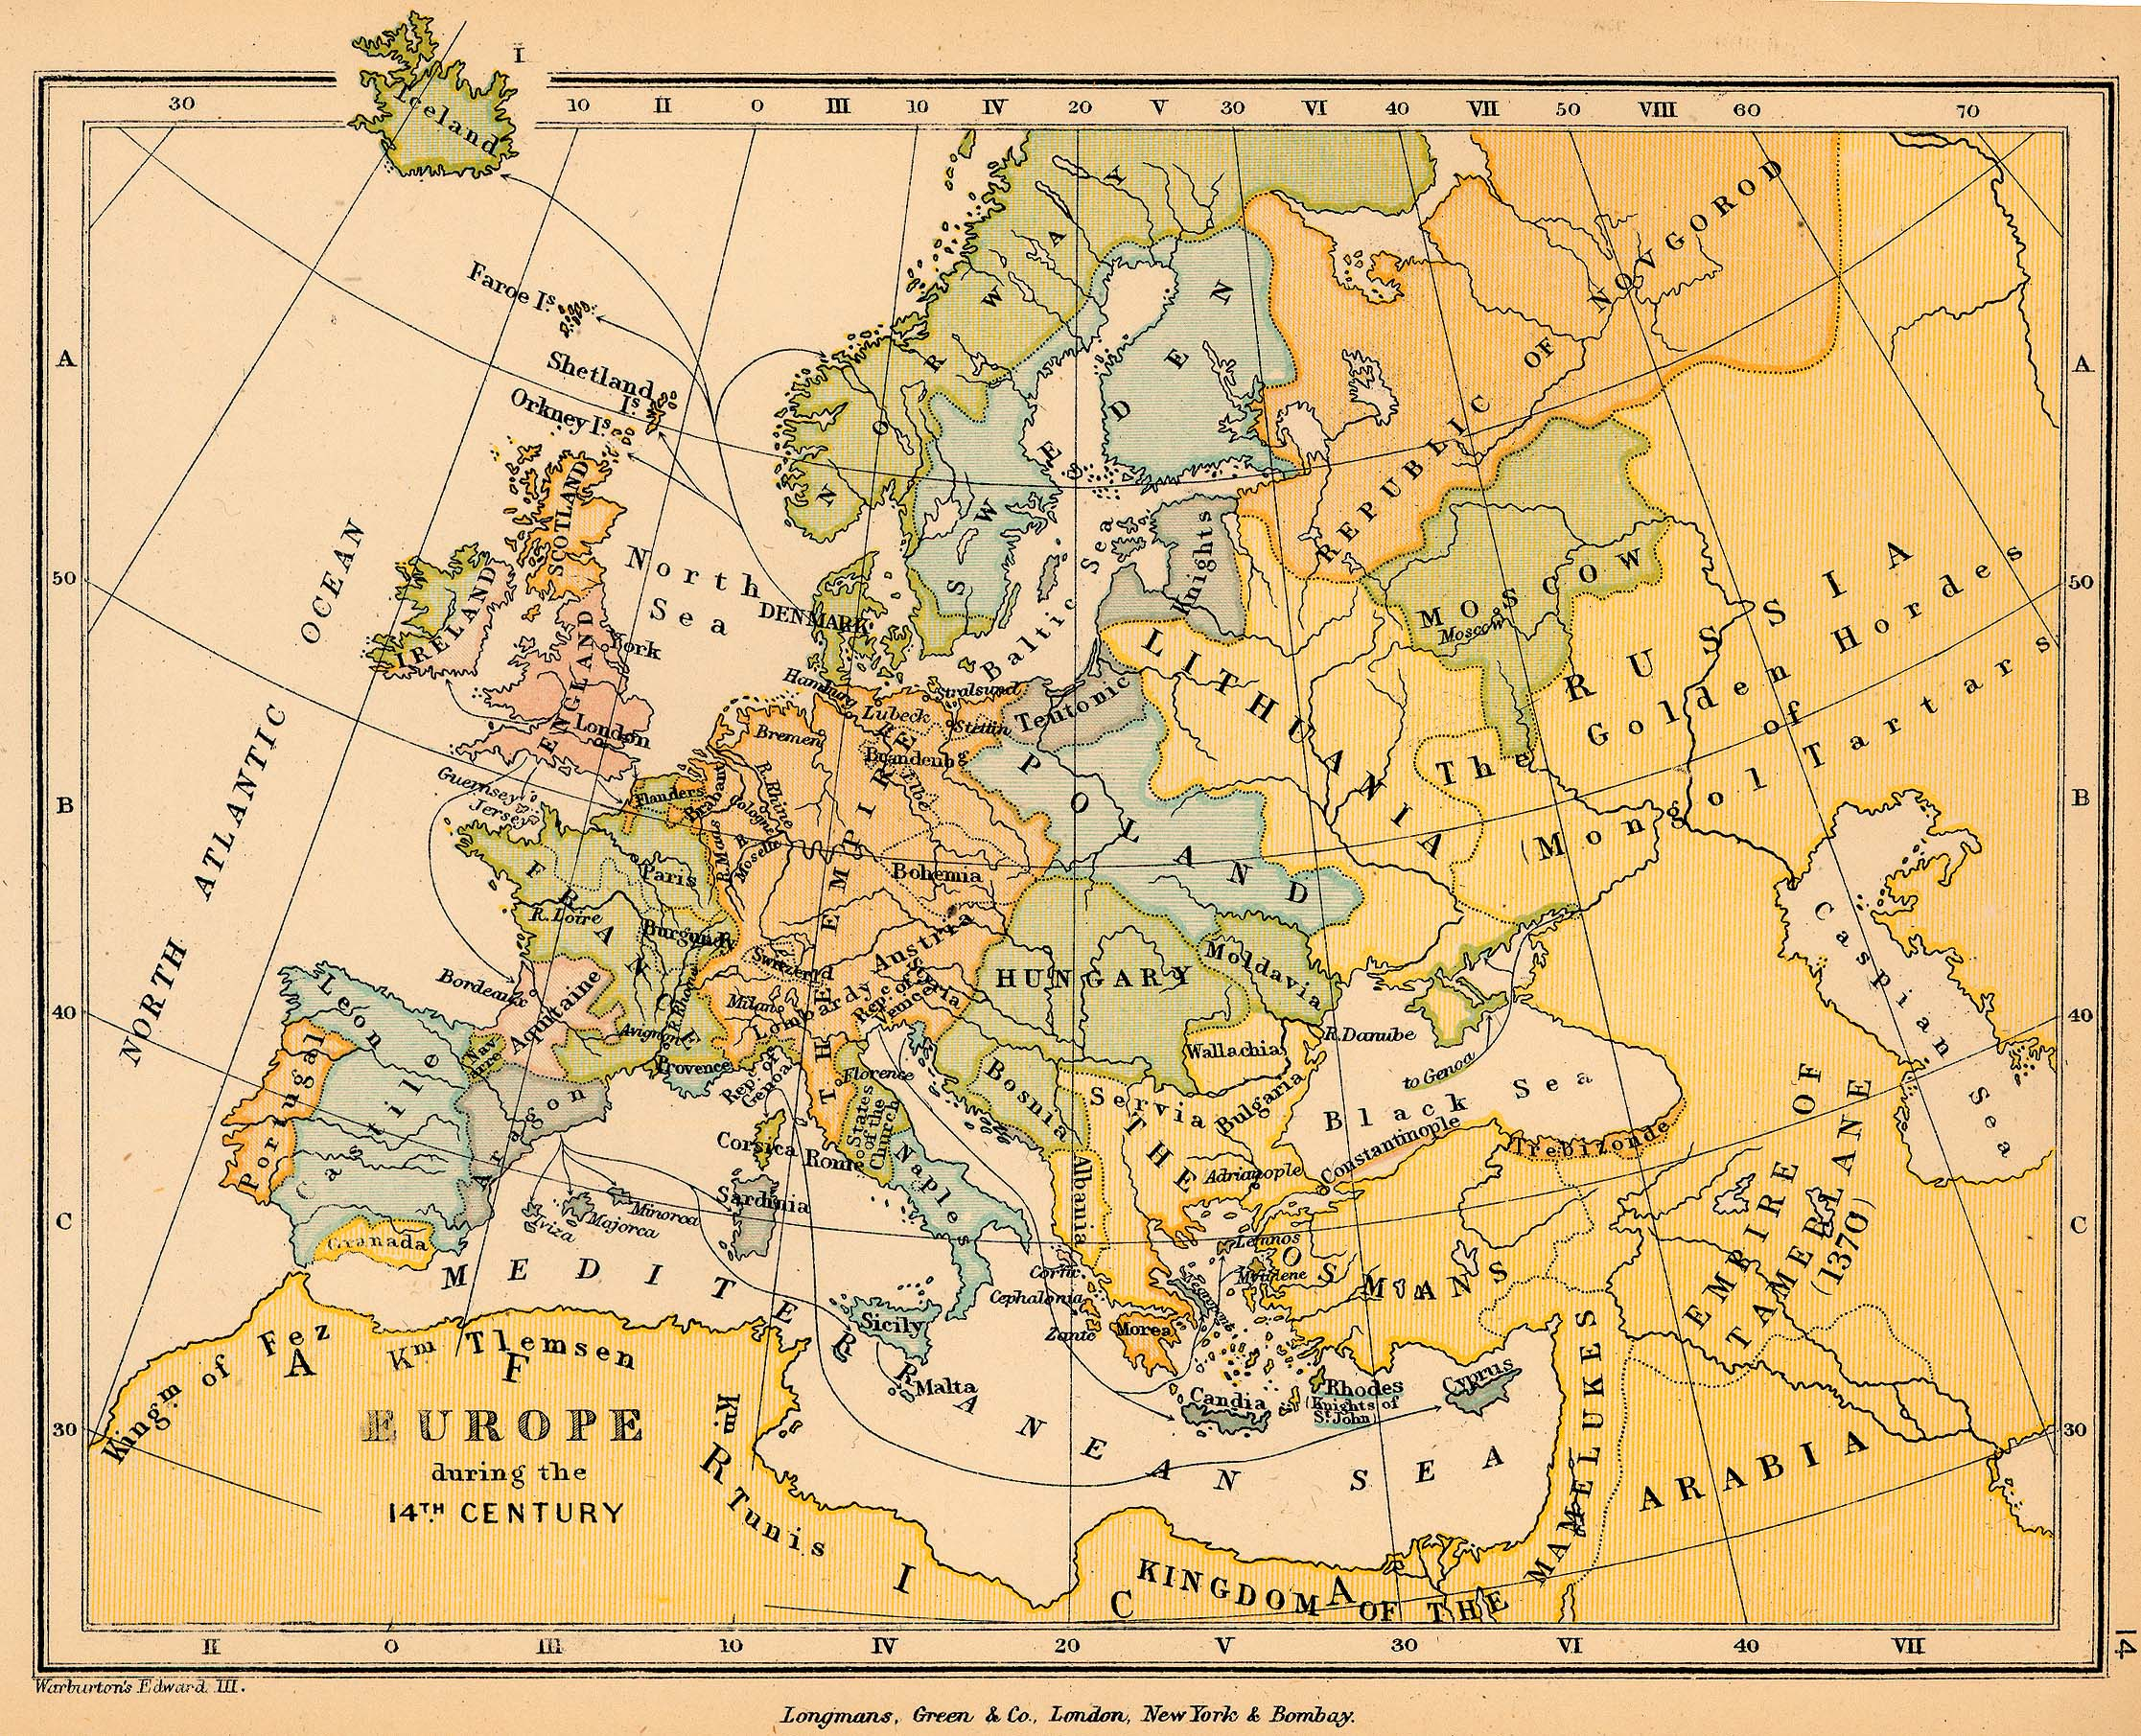 Europe during the 14th Century